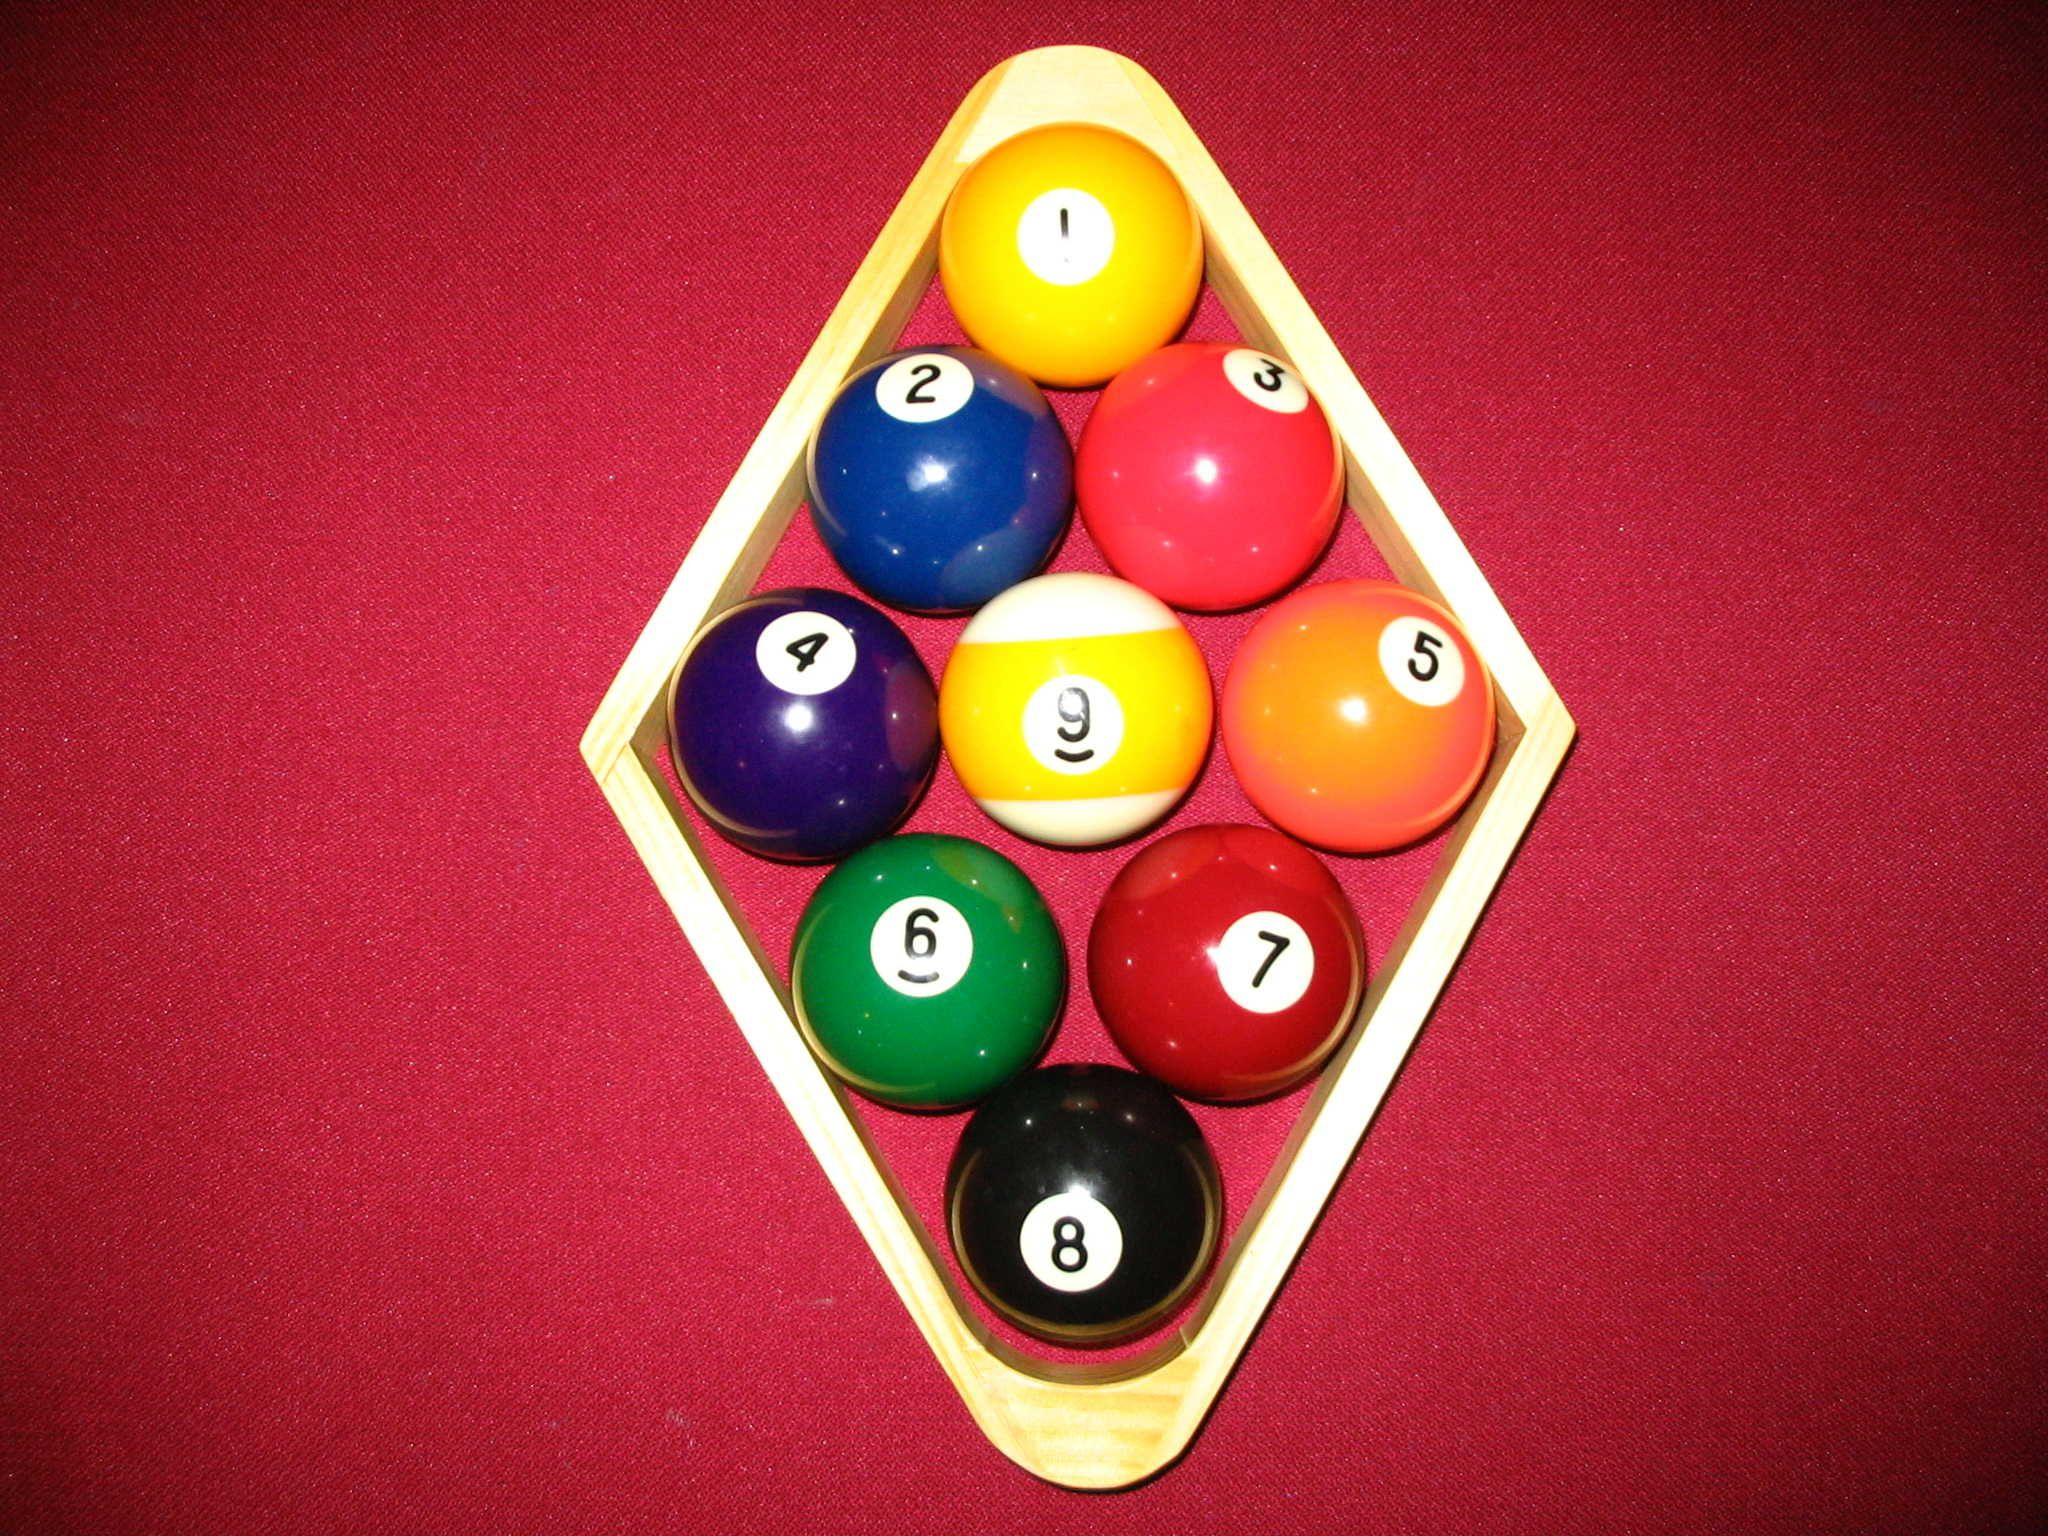 How to play 9 ball pool the simplified version pool